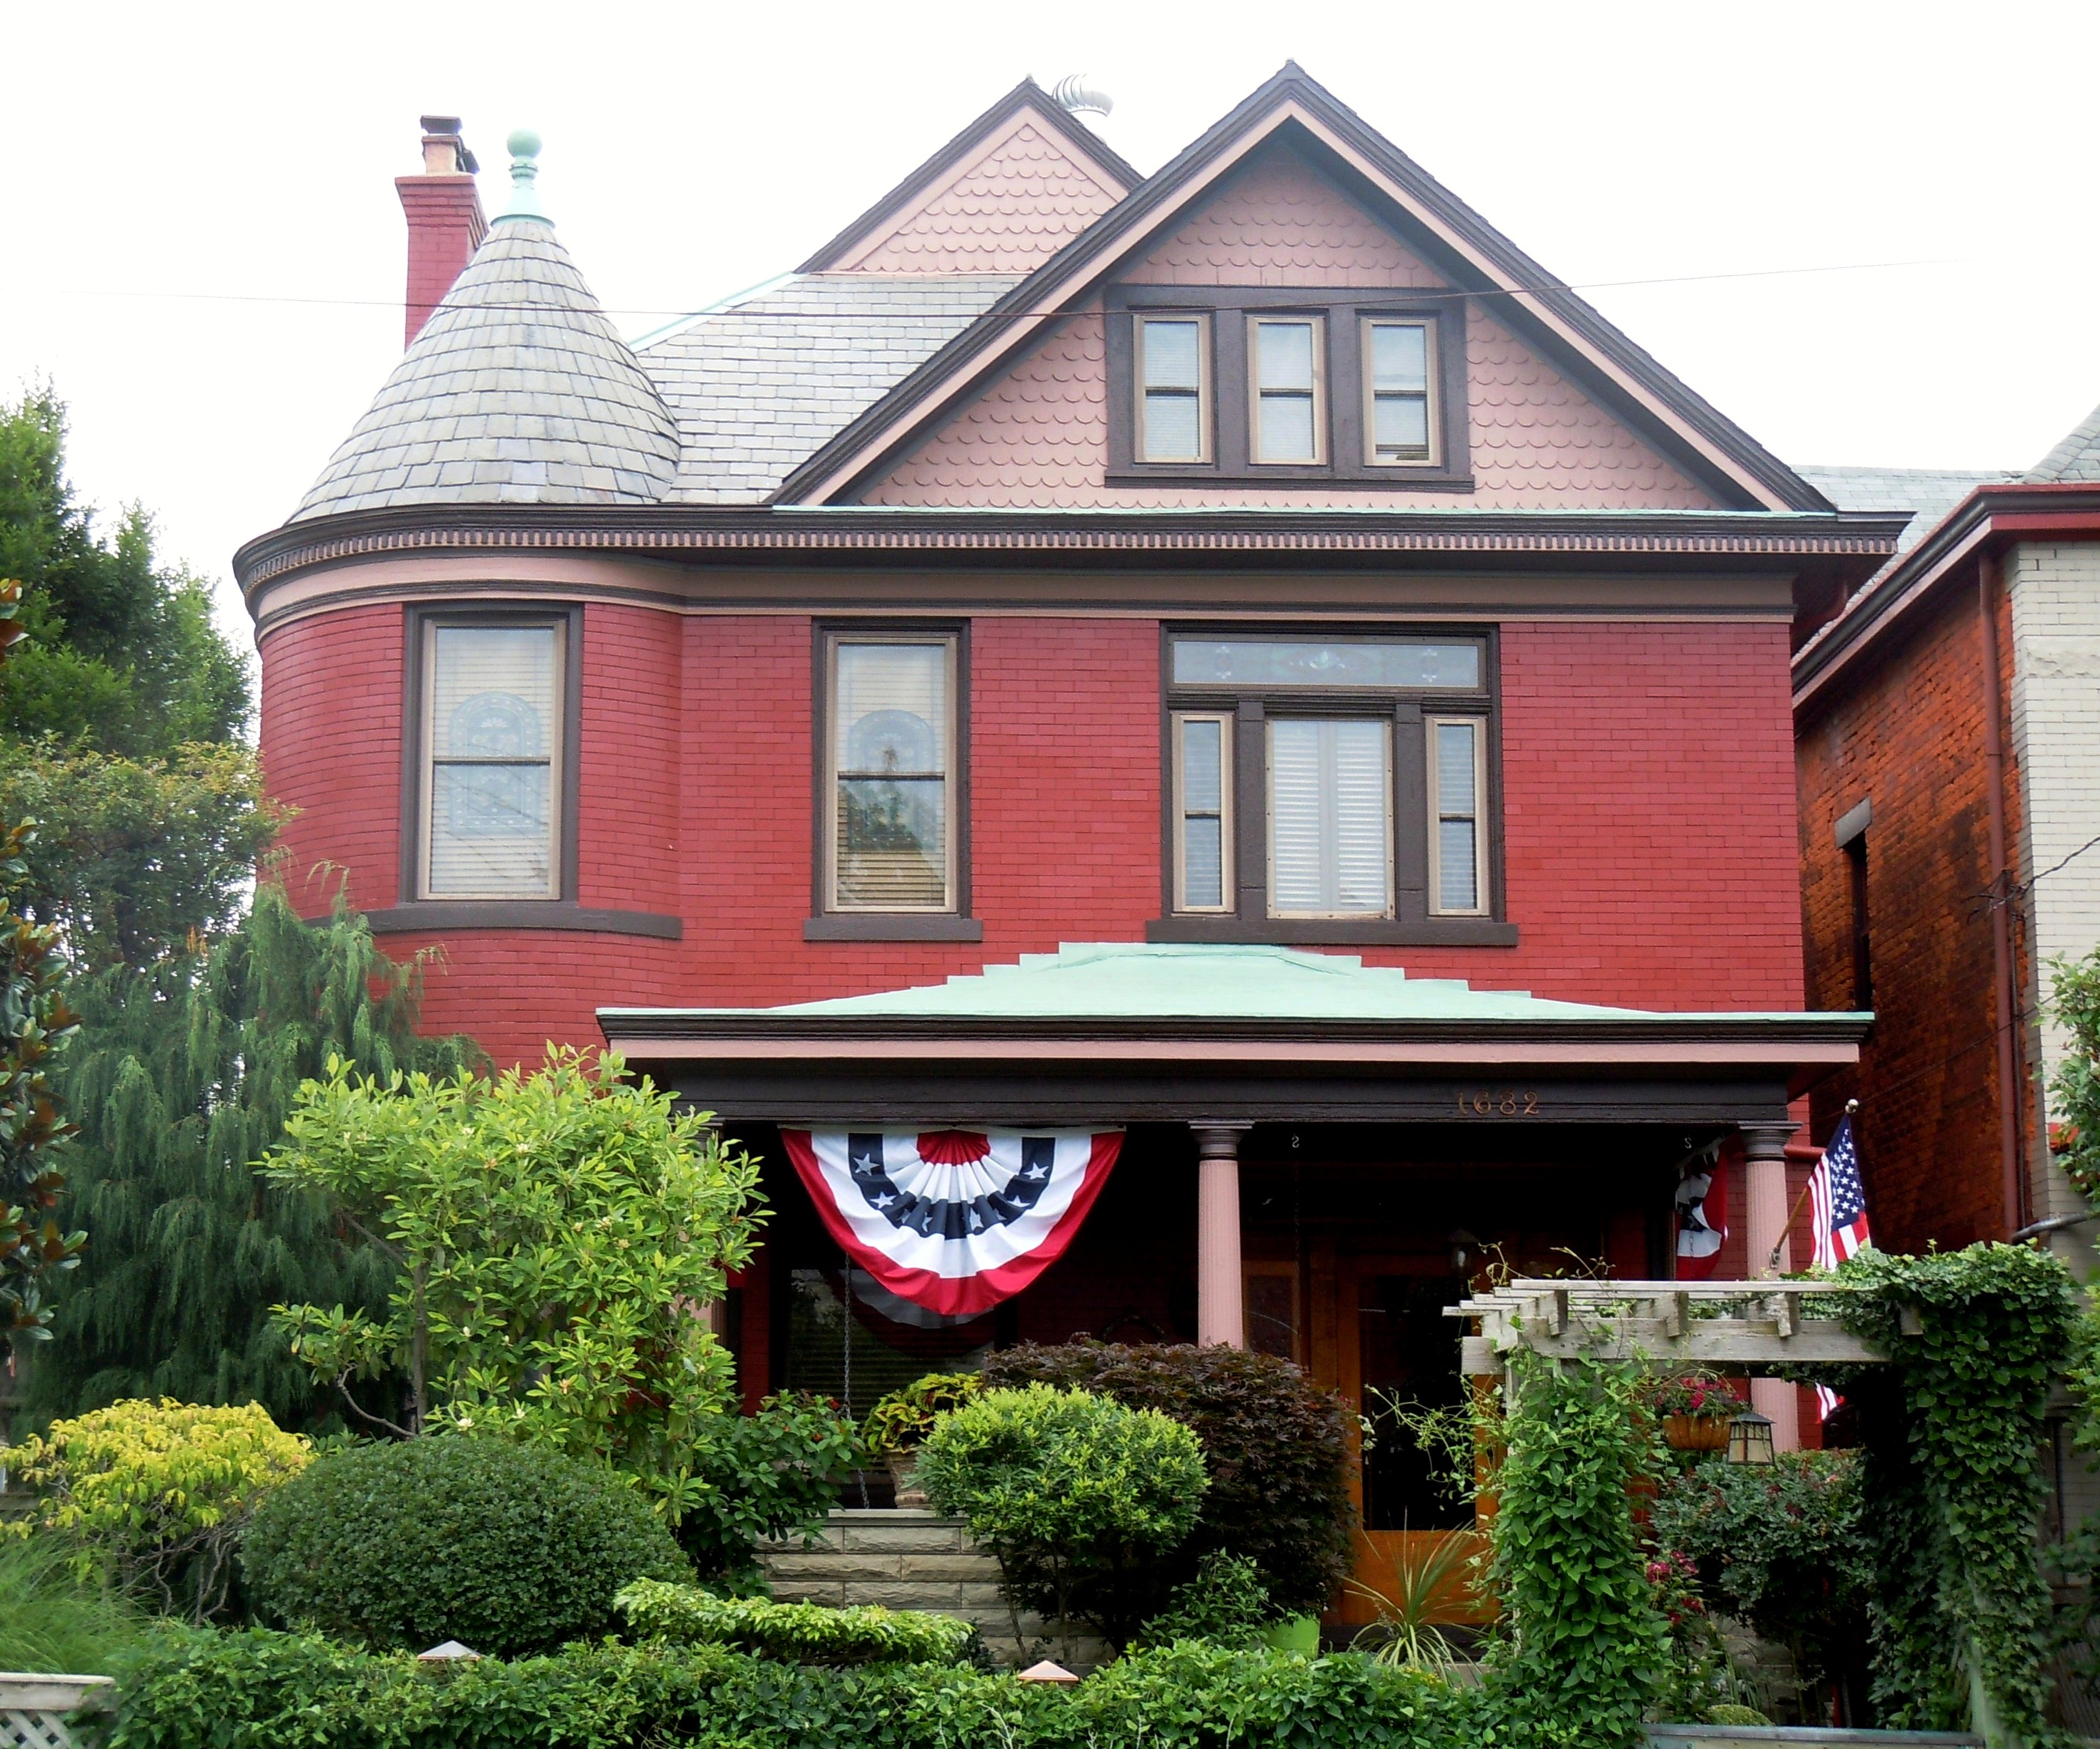 Shelton victorian queen anne cincinnati ohio historic Queen anne house